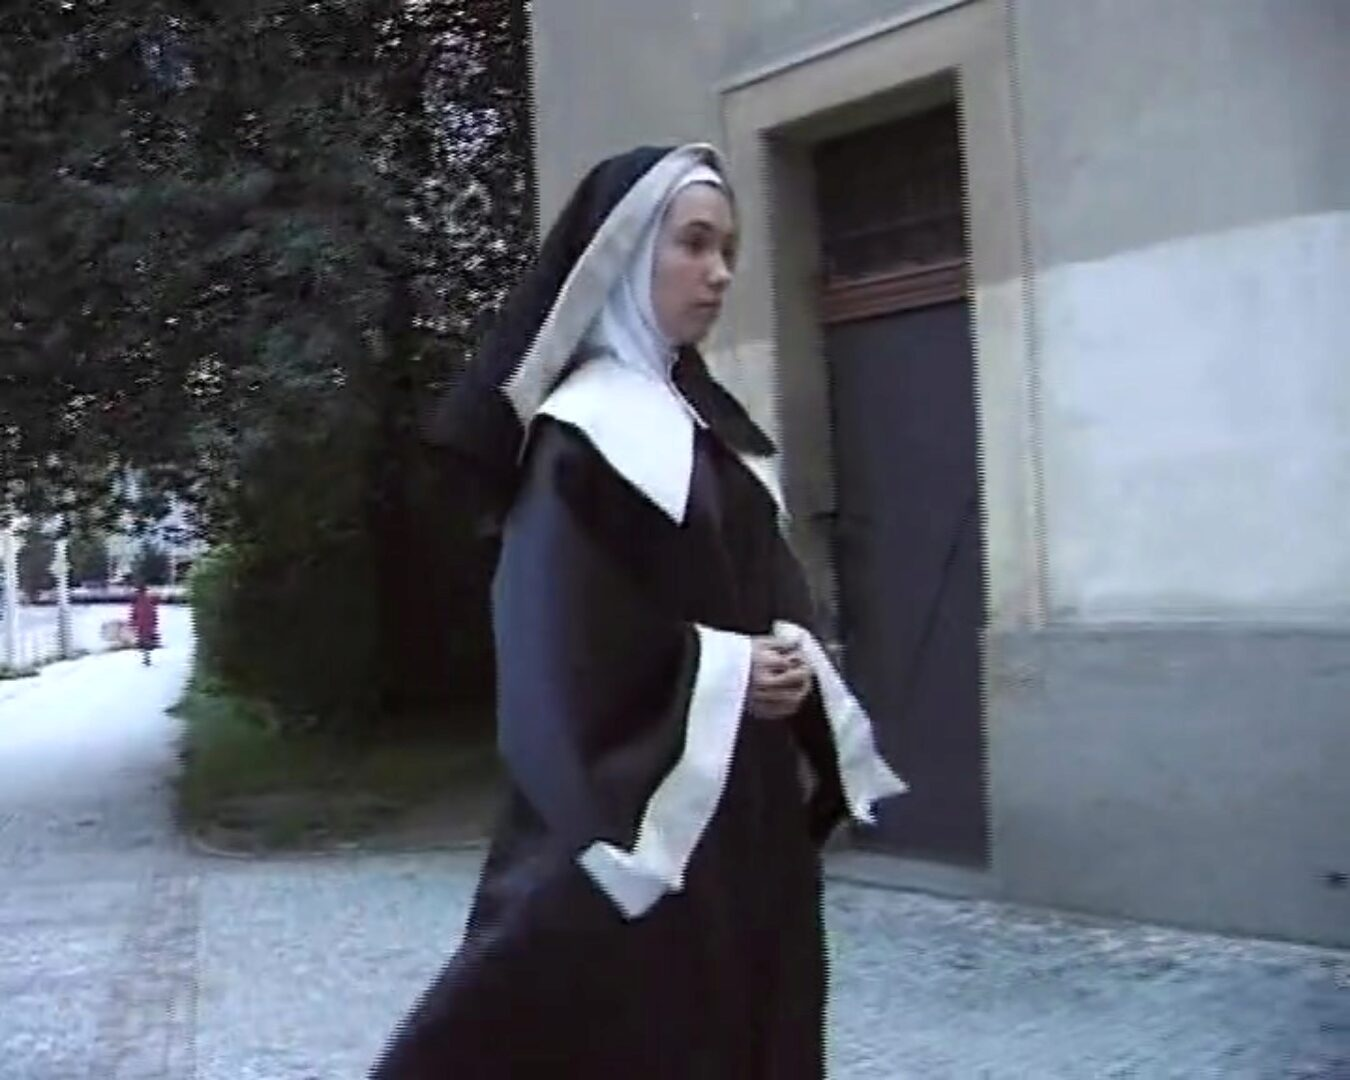 German nun gives in to seduction